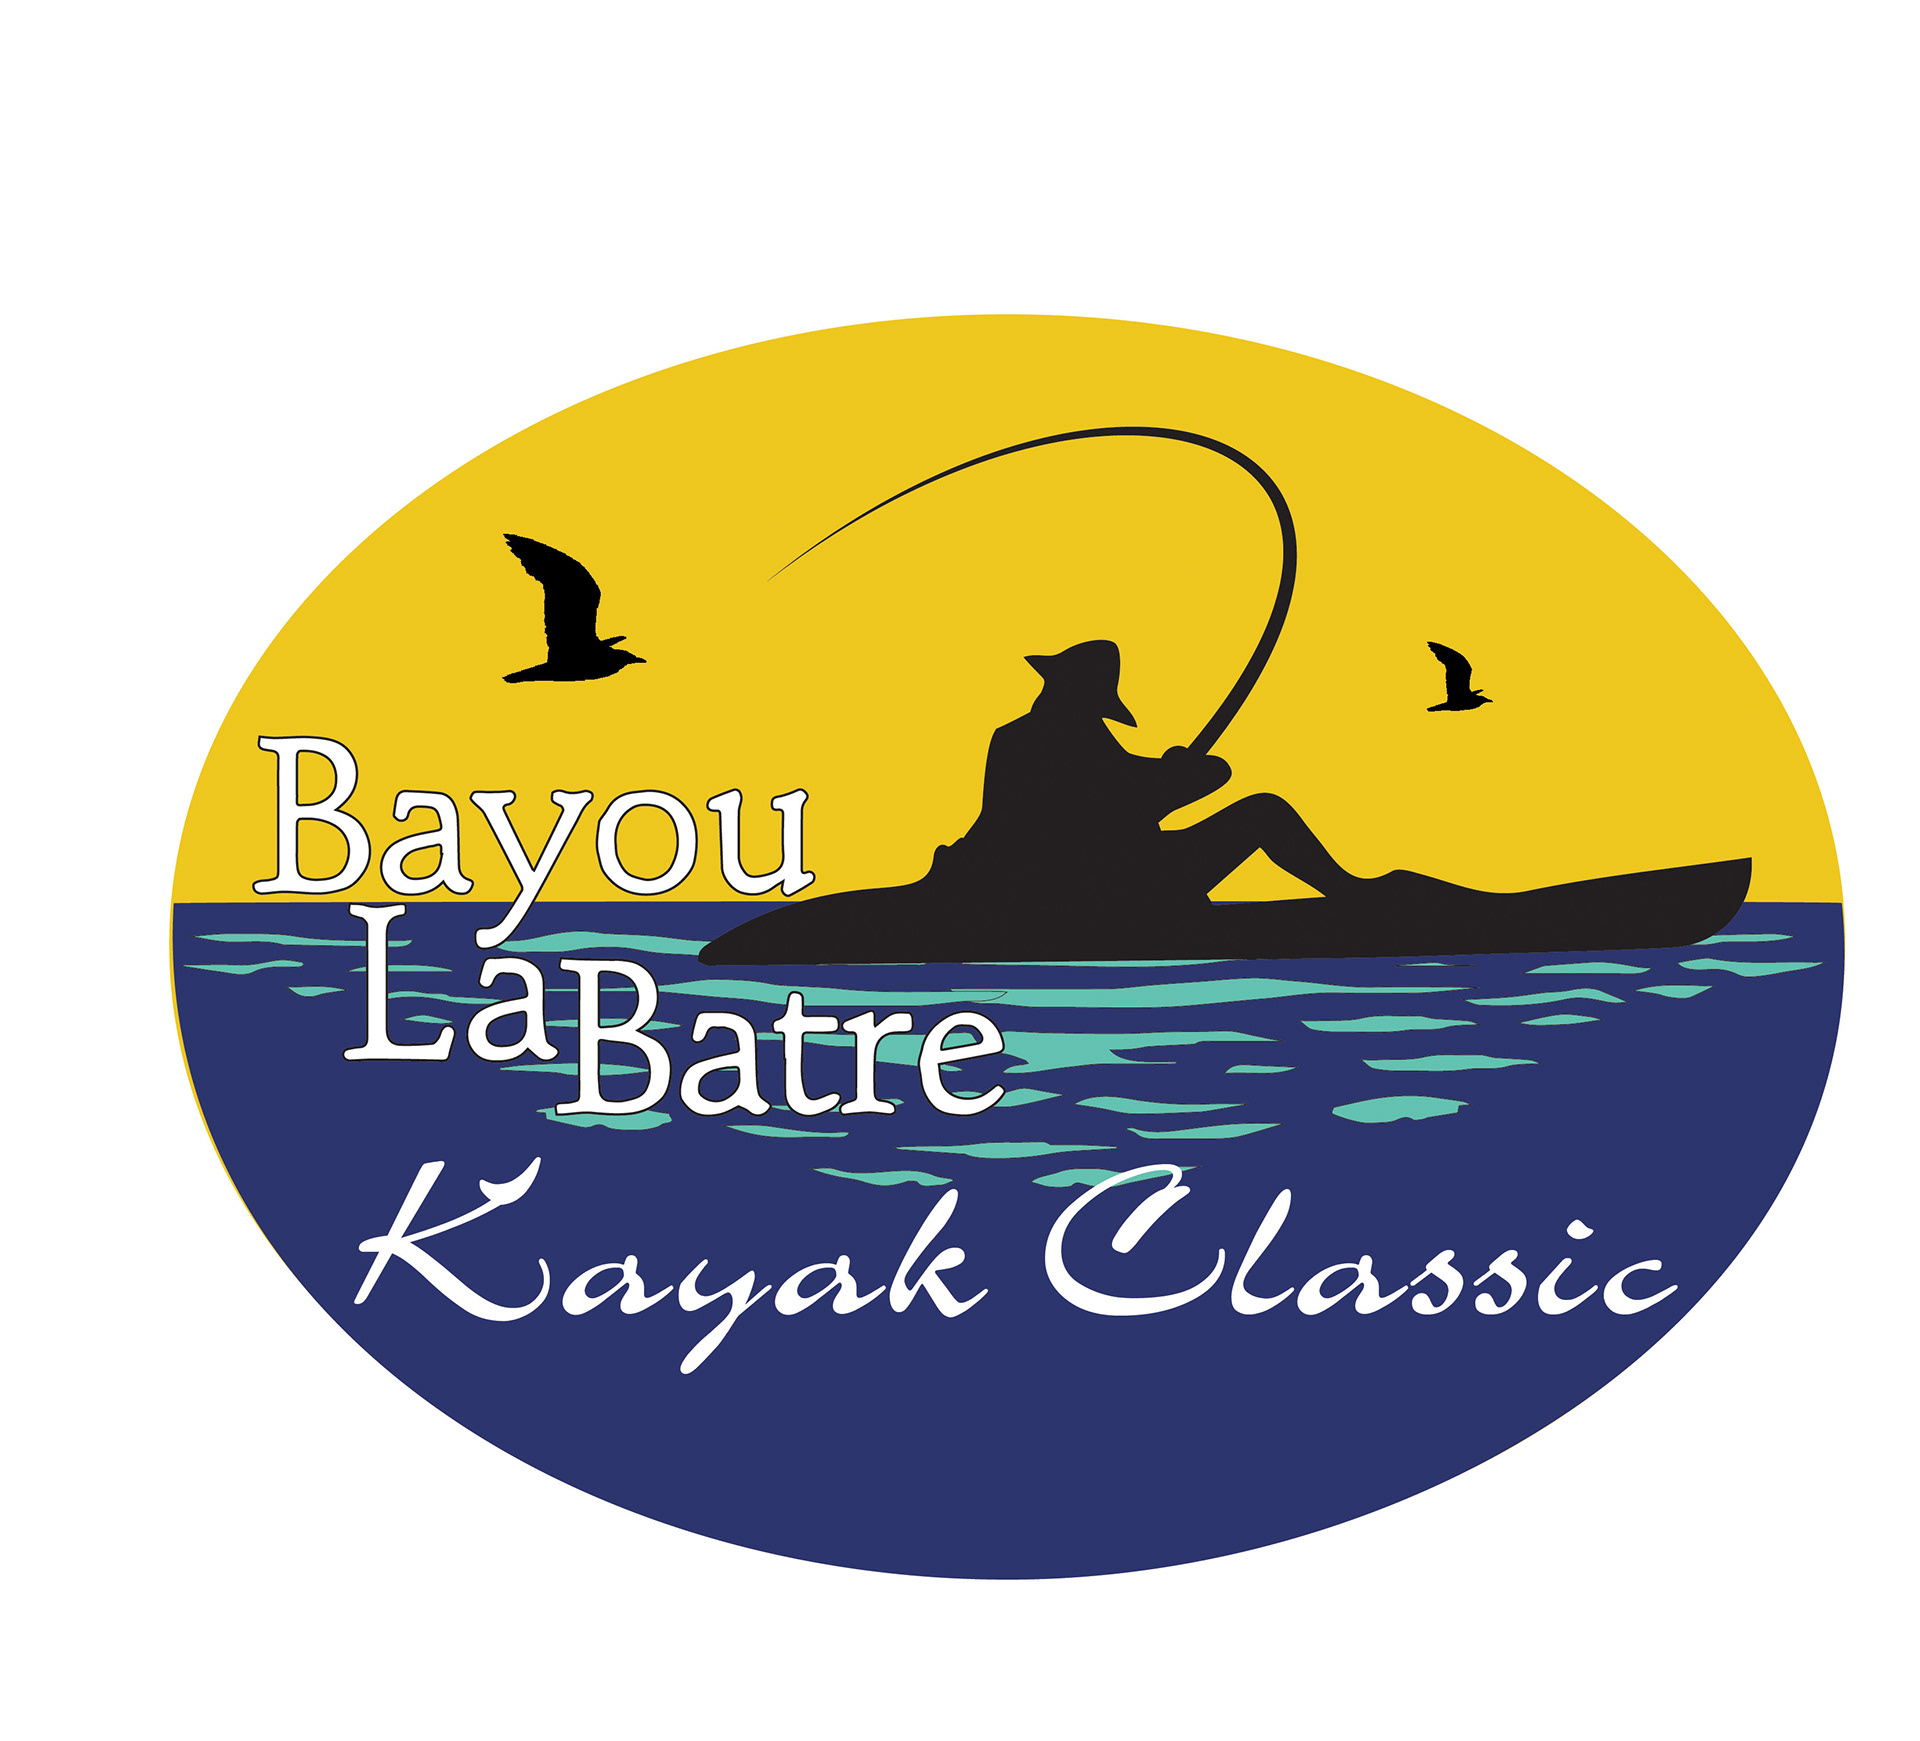 bayou la batre girls The bayou la batre area chamber of commerce would like to thank all the kids at dauphin island elementary who submitted entries for the bayou la batre kayak classic fishing tournament coloring contest.